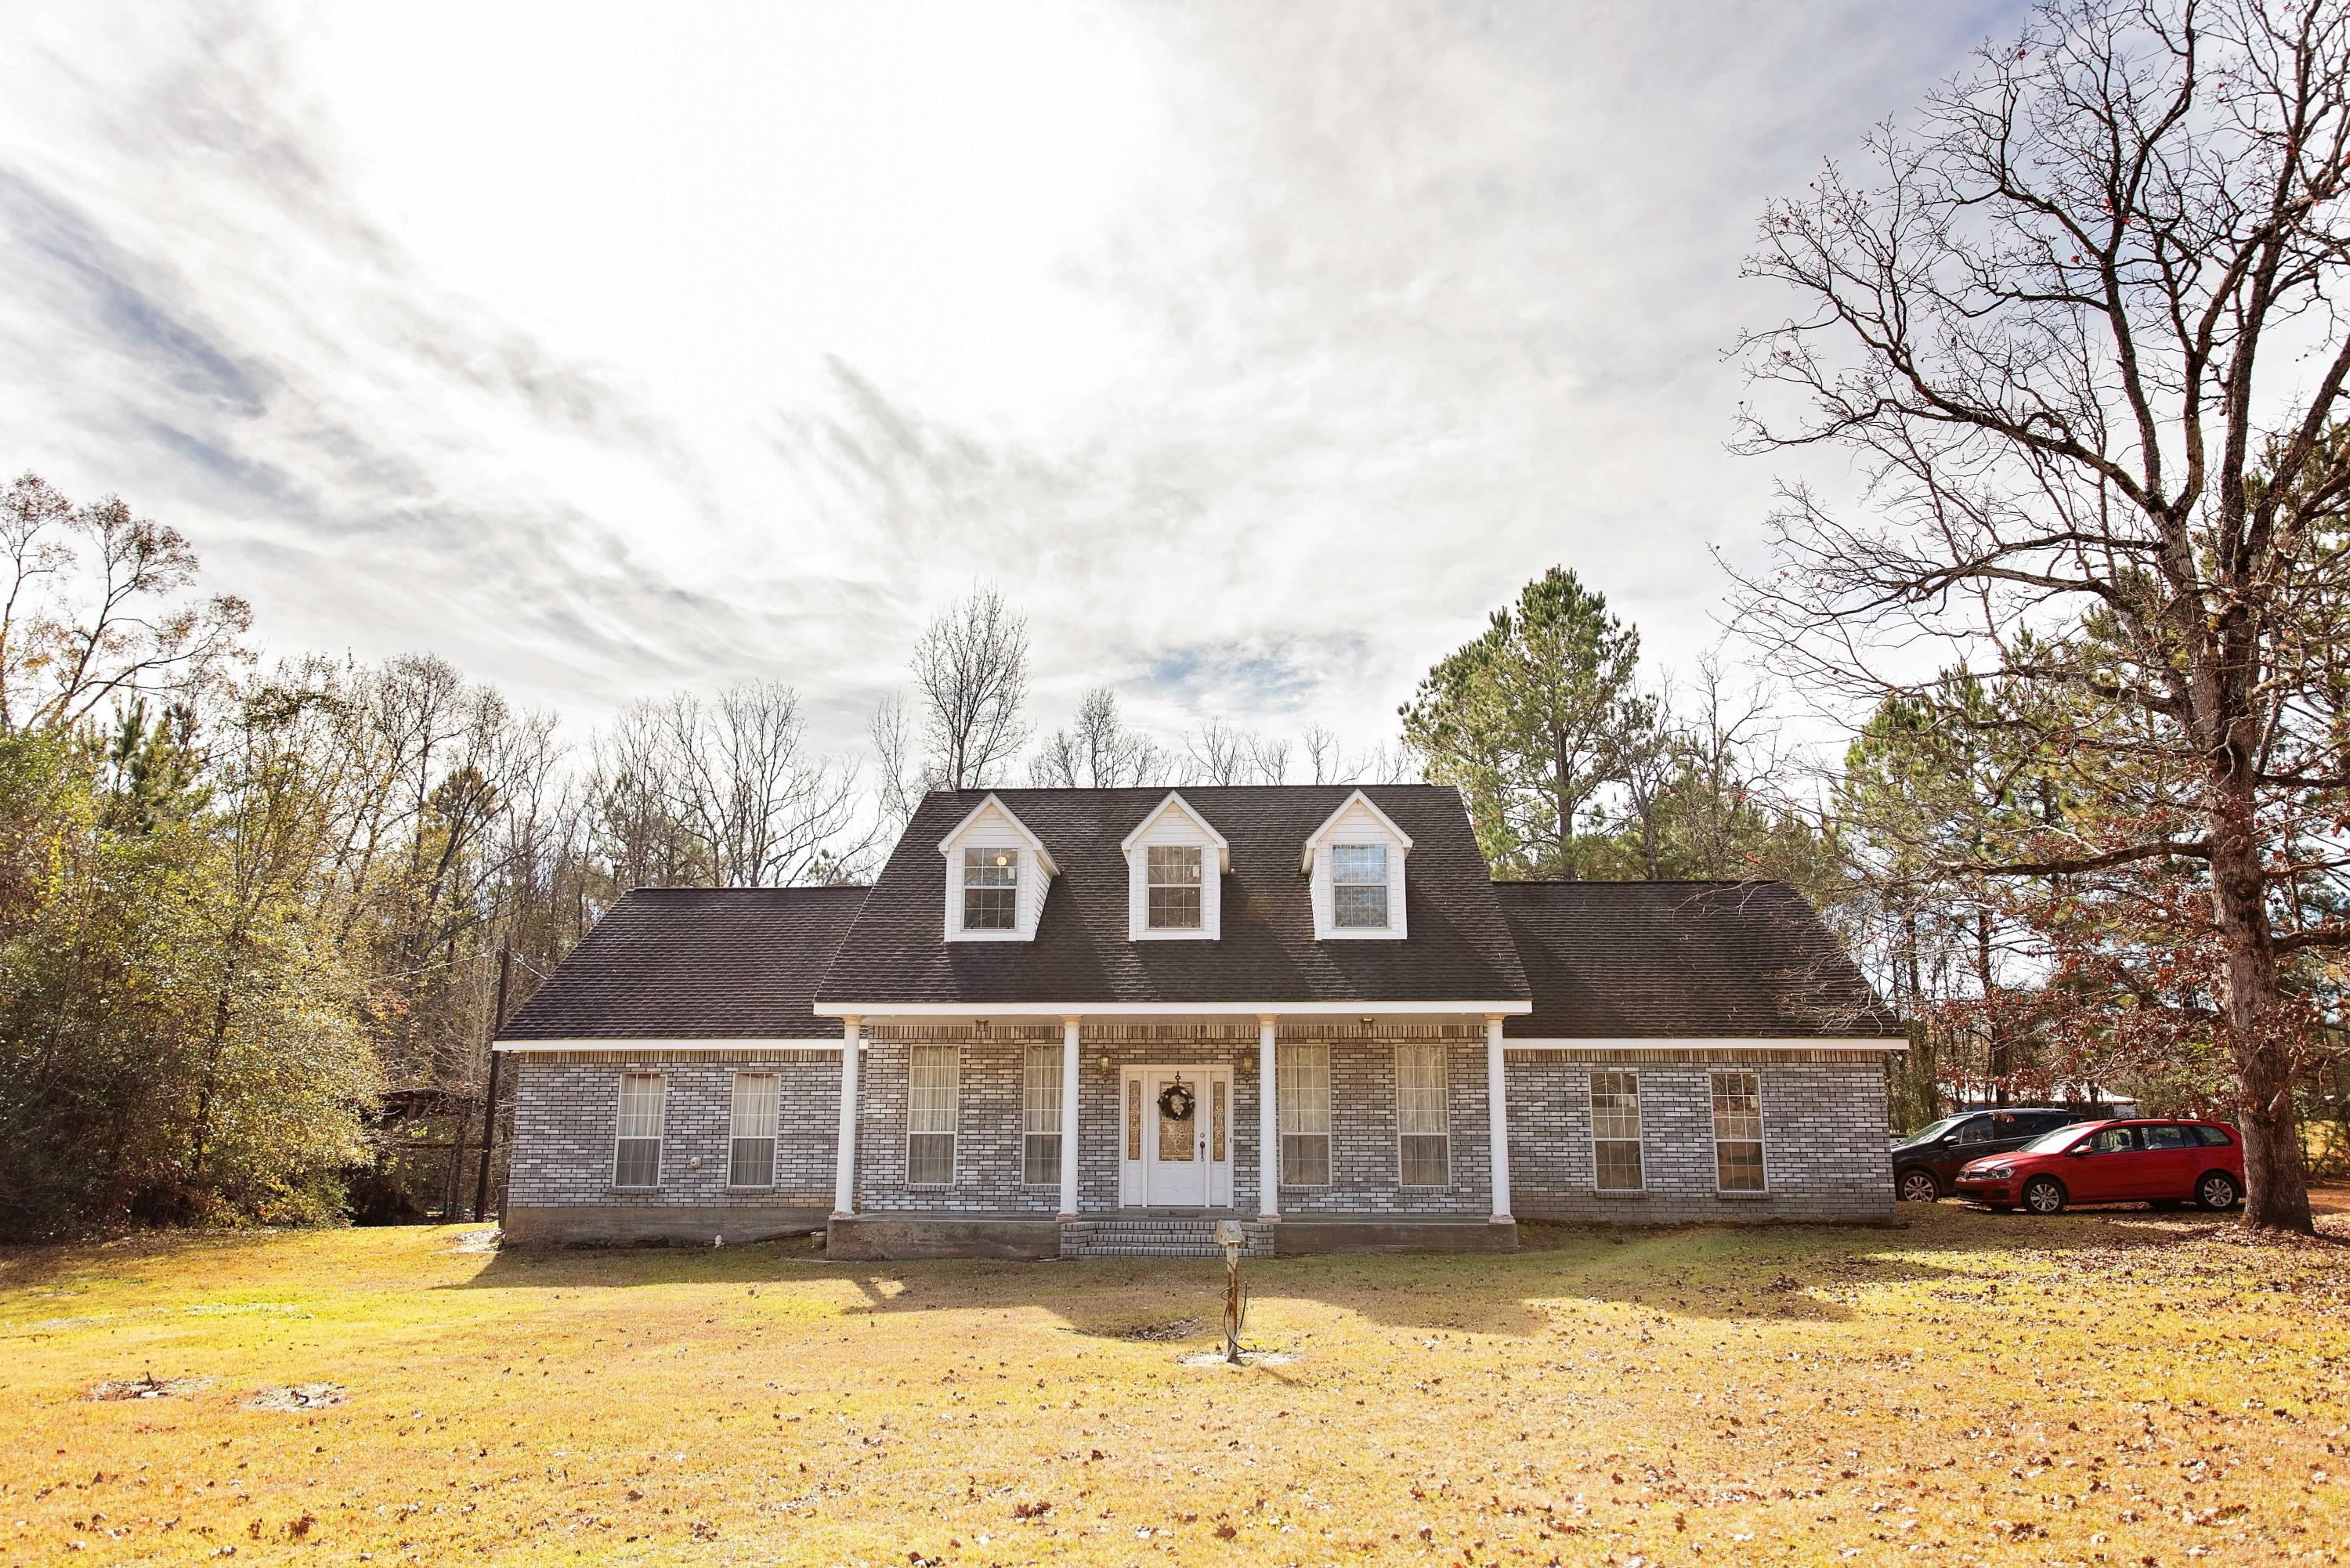 DeRidder home for sale, 2676 Hwy 394, DeRidder LA - $299,000